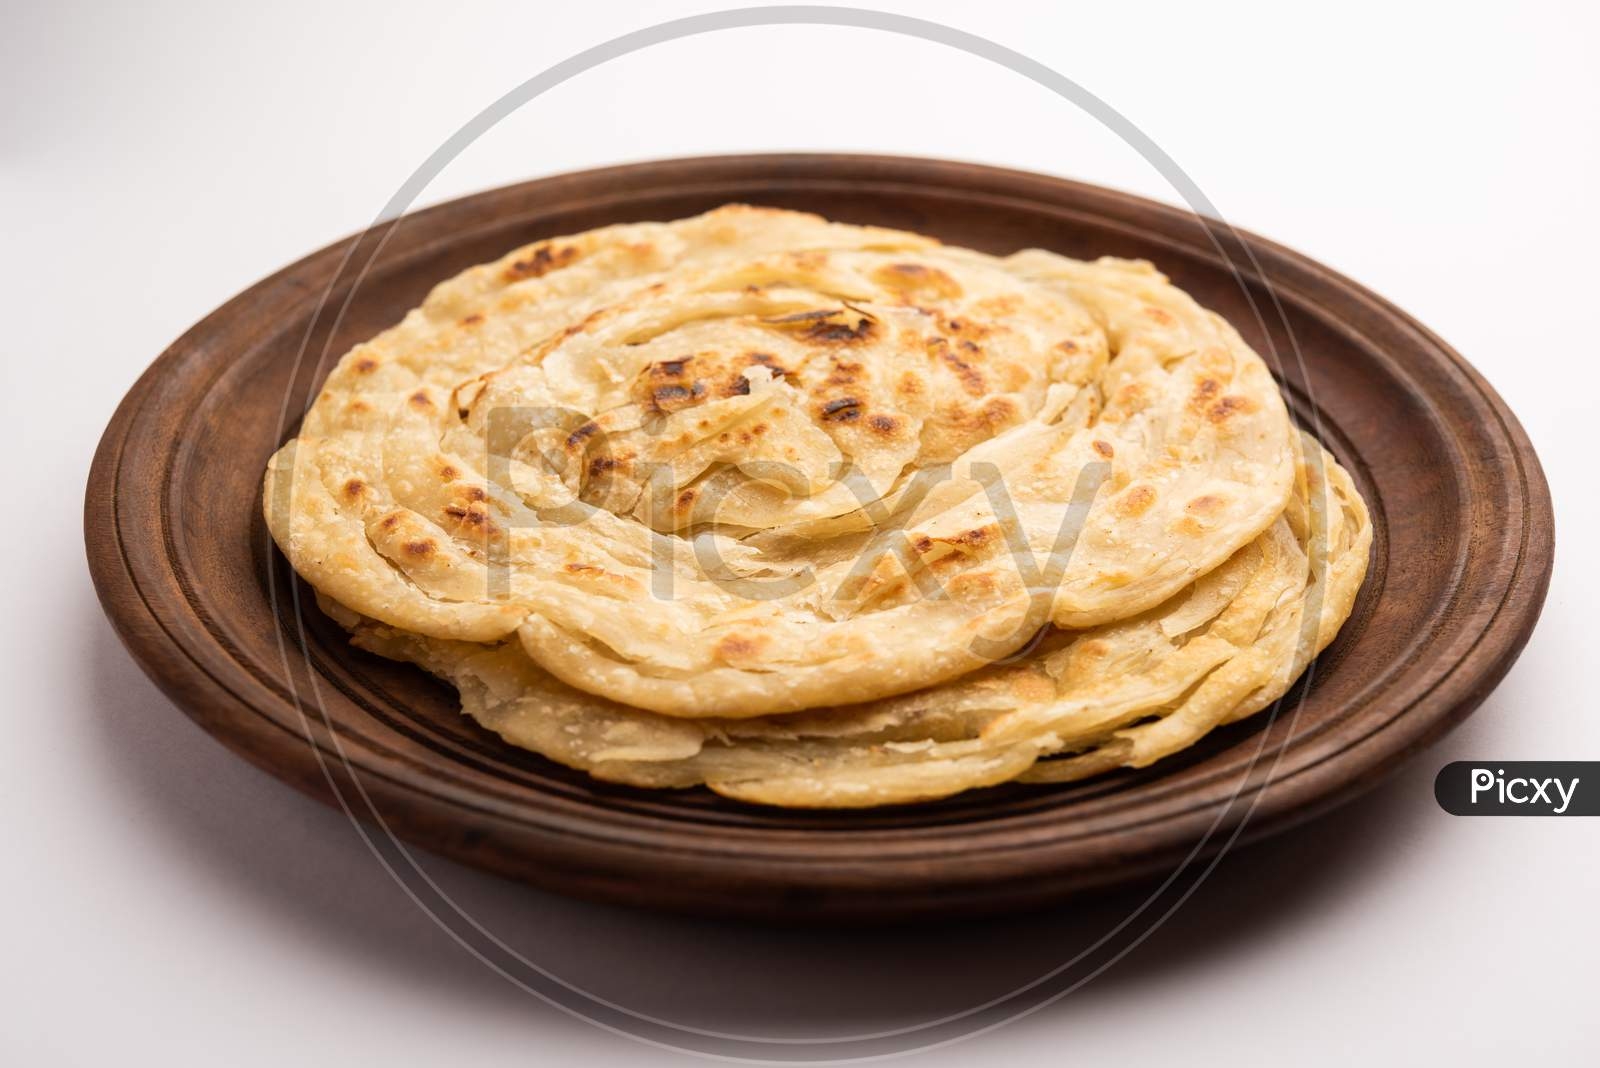 Indian Flatbread Called Laccha Paratha, Made Up Of Layers Using Wheat Flour Or Maida